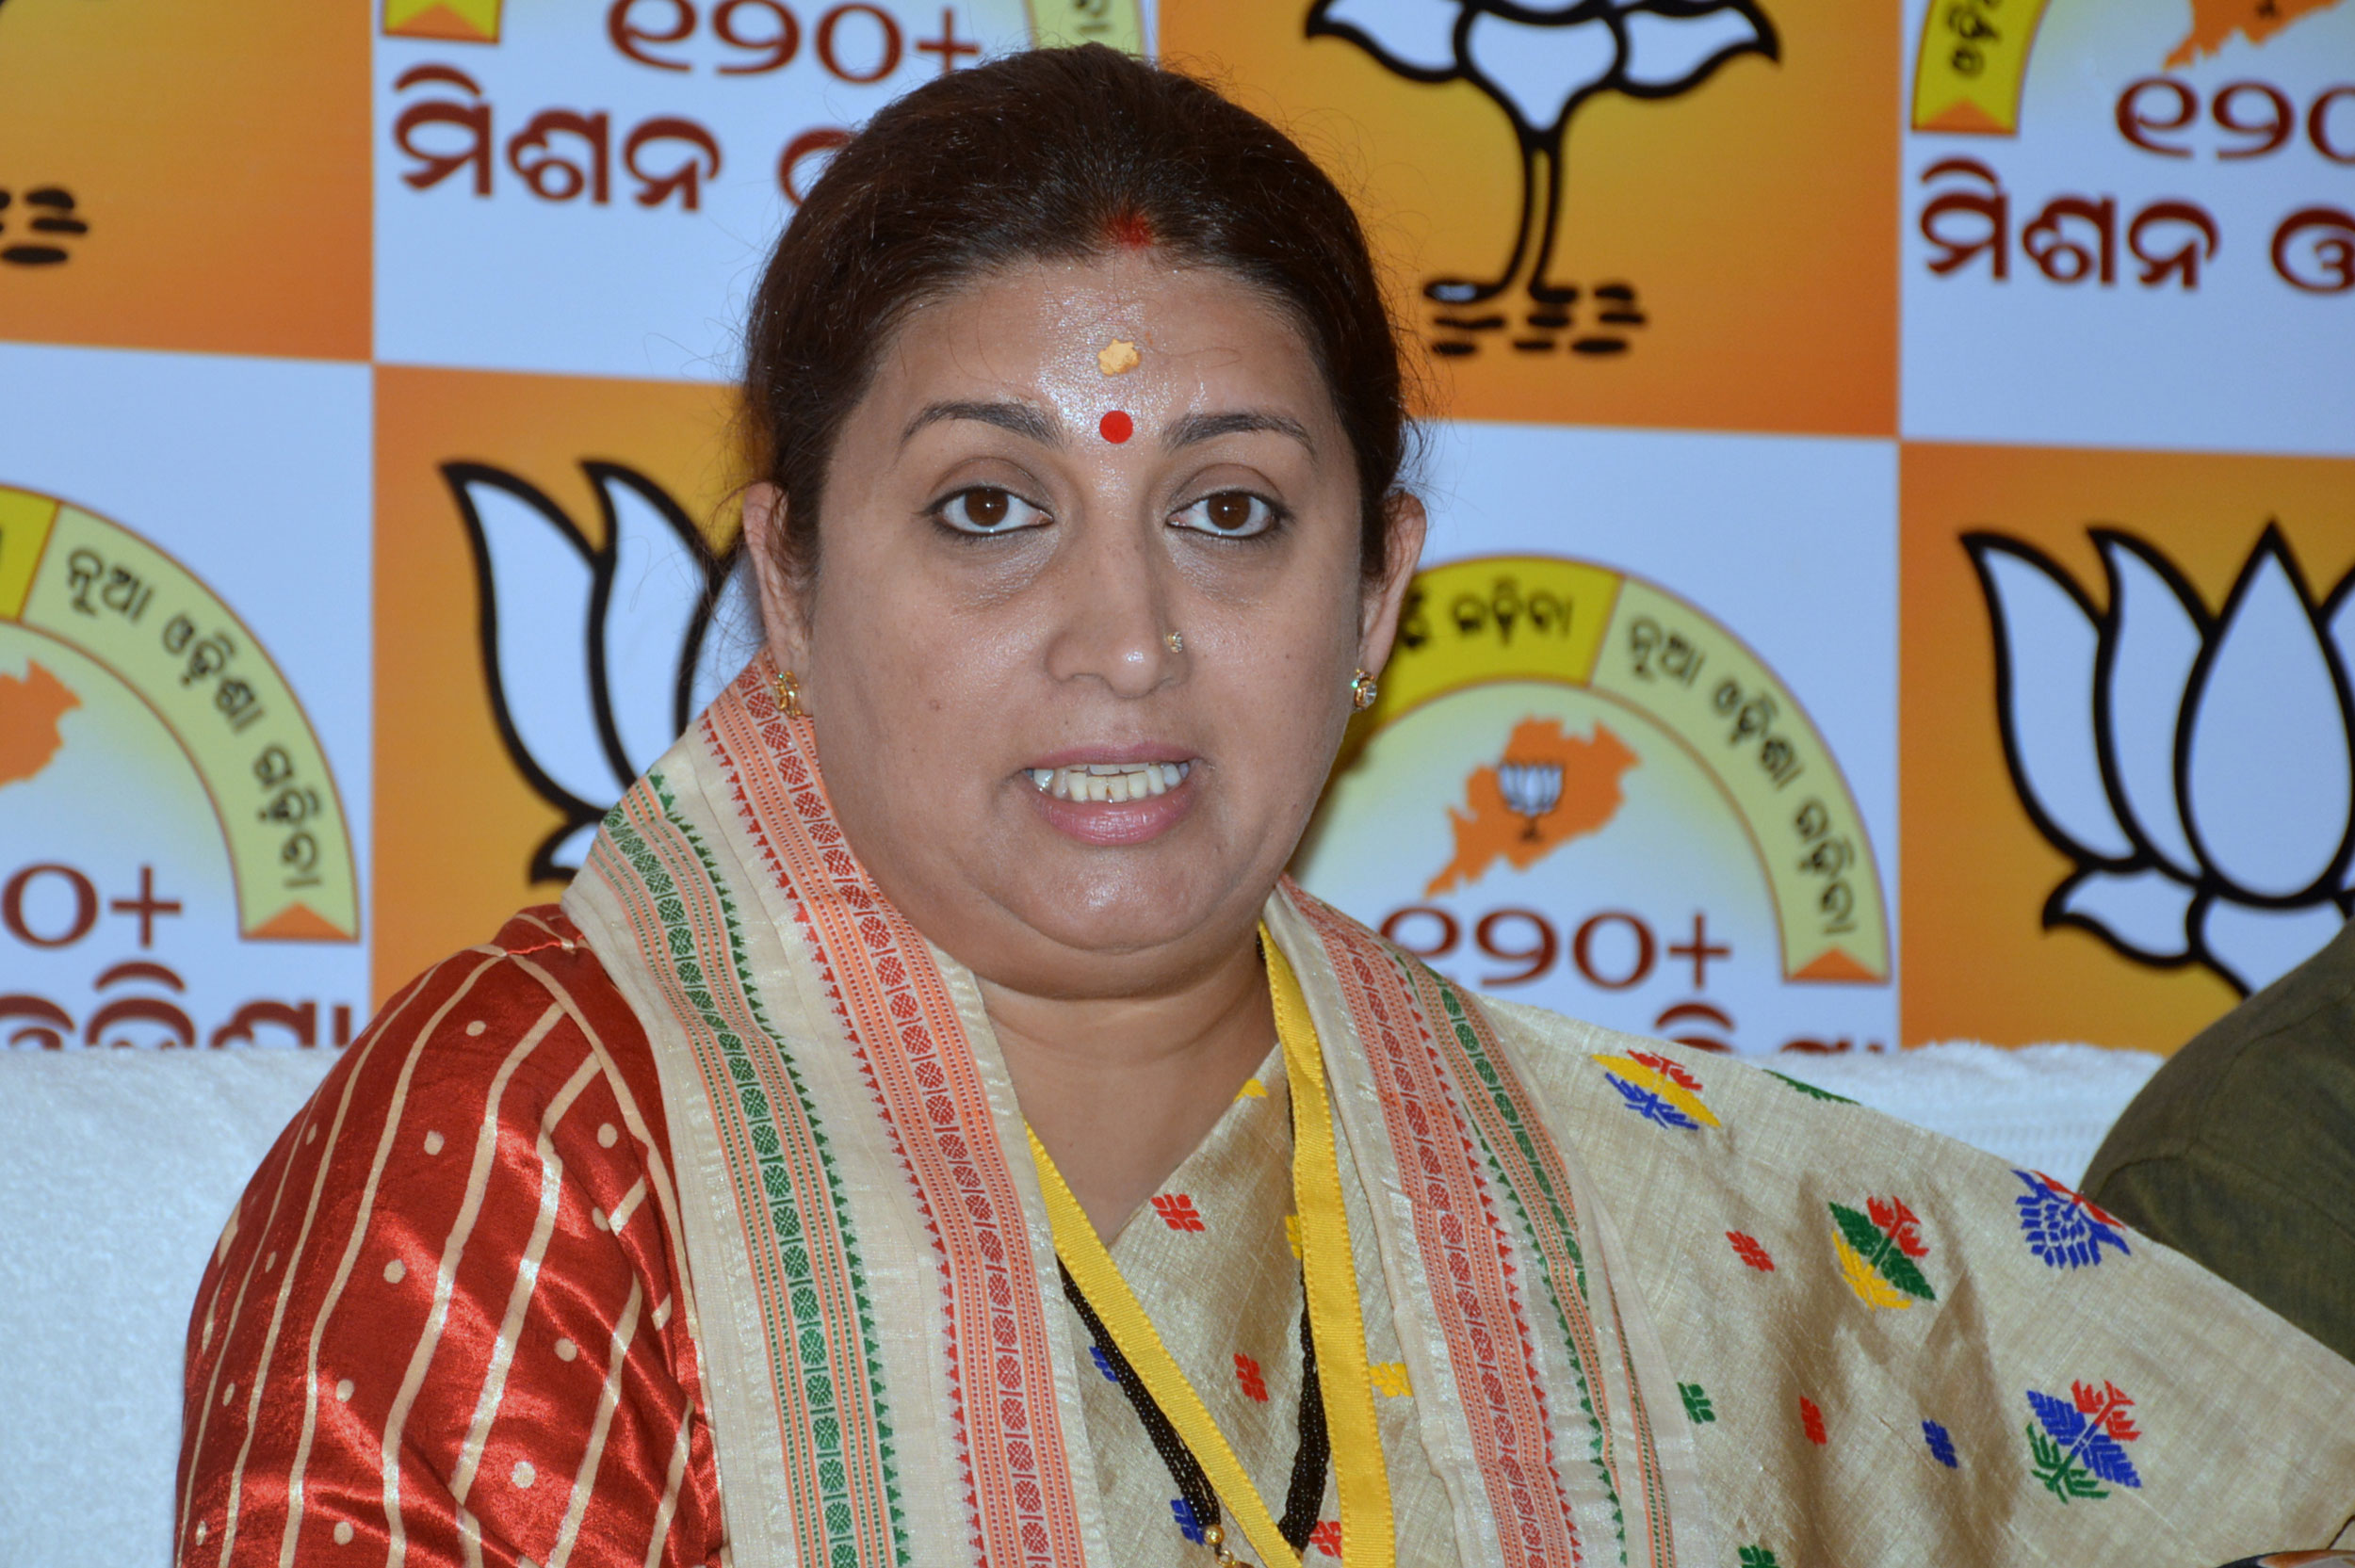 Congress accuses Smriti Irani of funds fraud